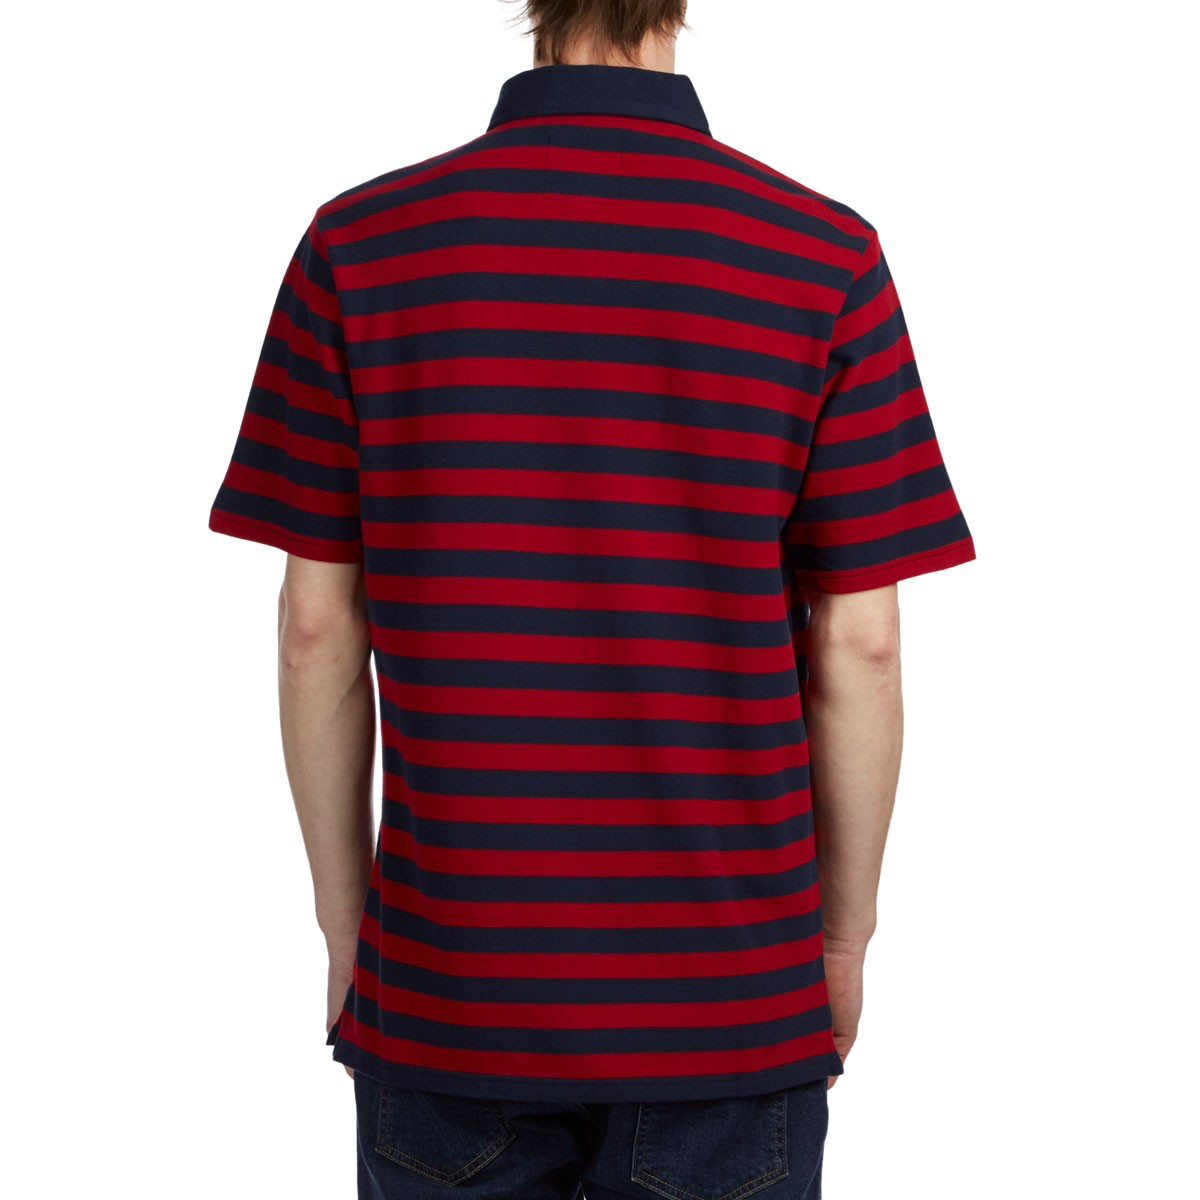 ed4448f455 Vans Chima Striped Polo Shirt - Chili Pepper Dress Blues